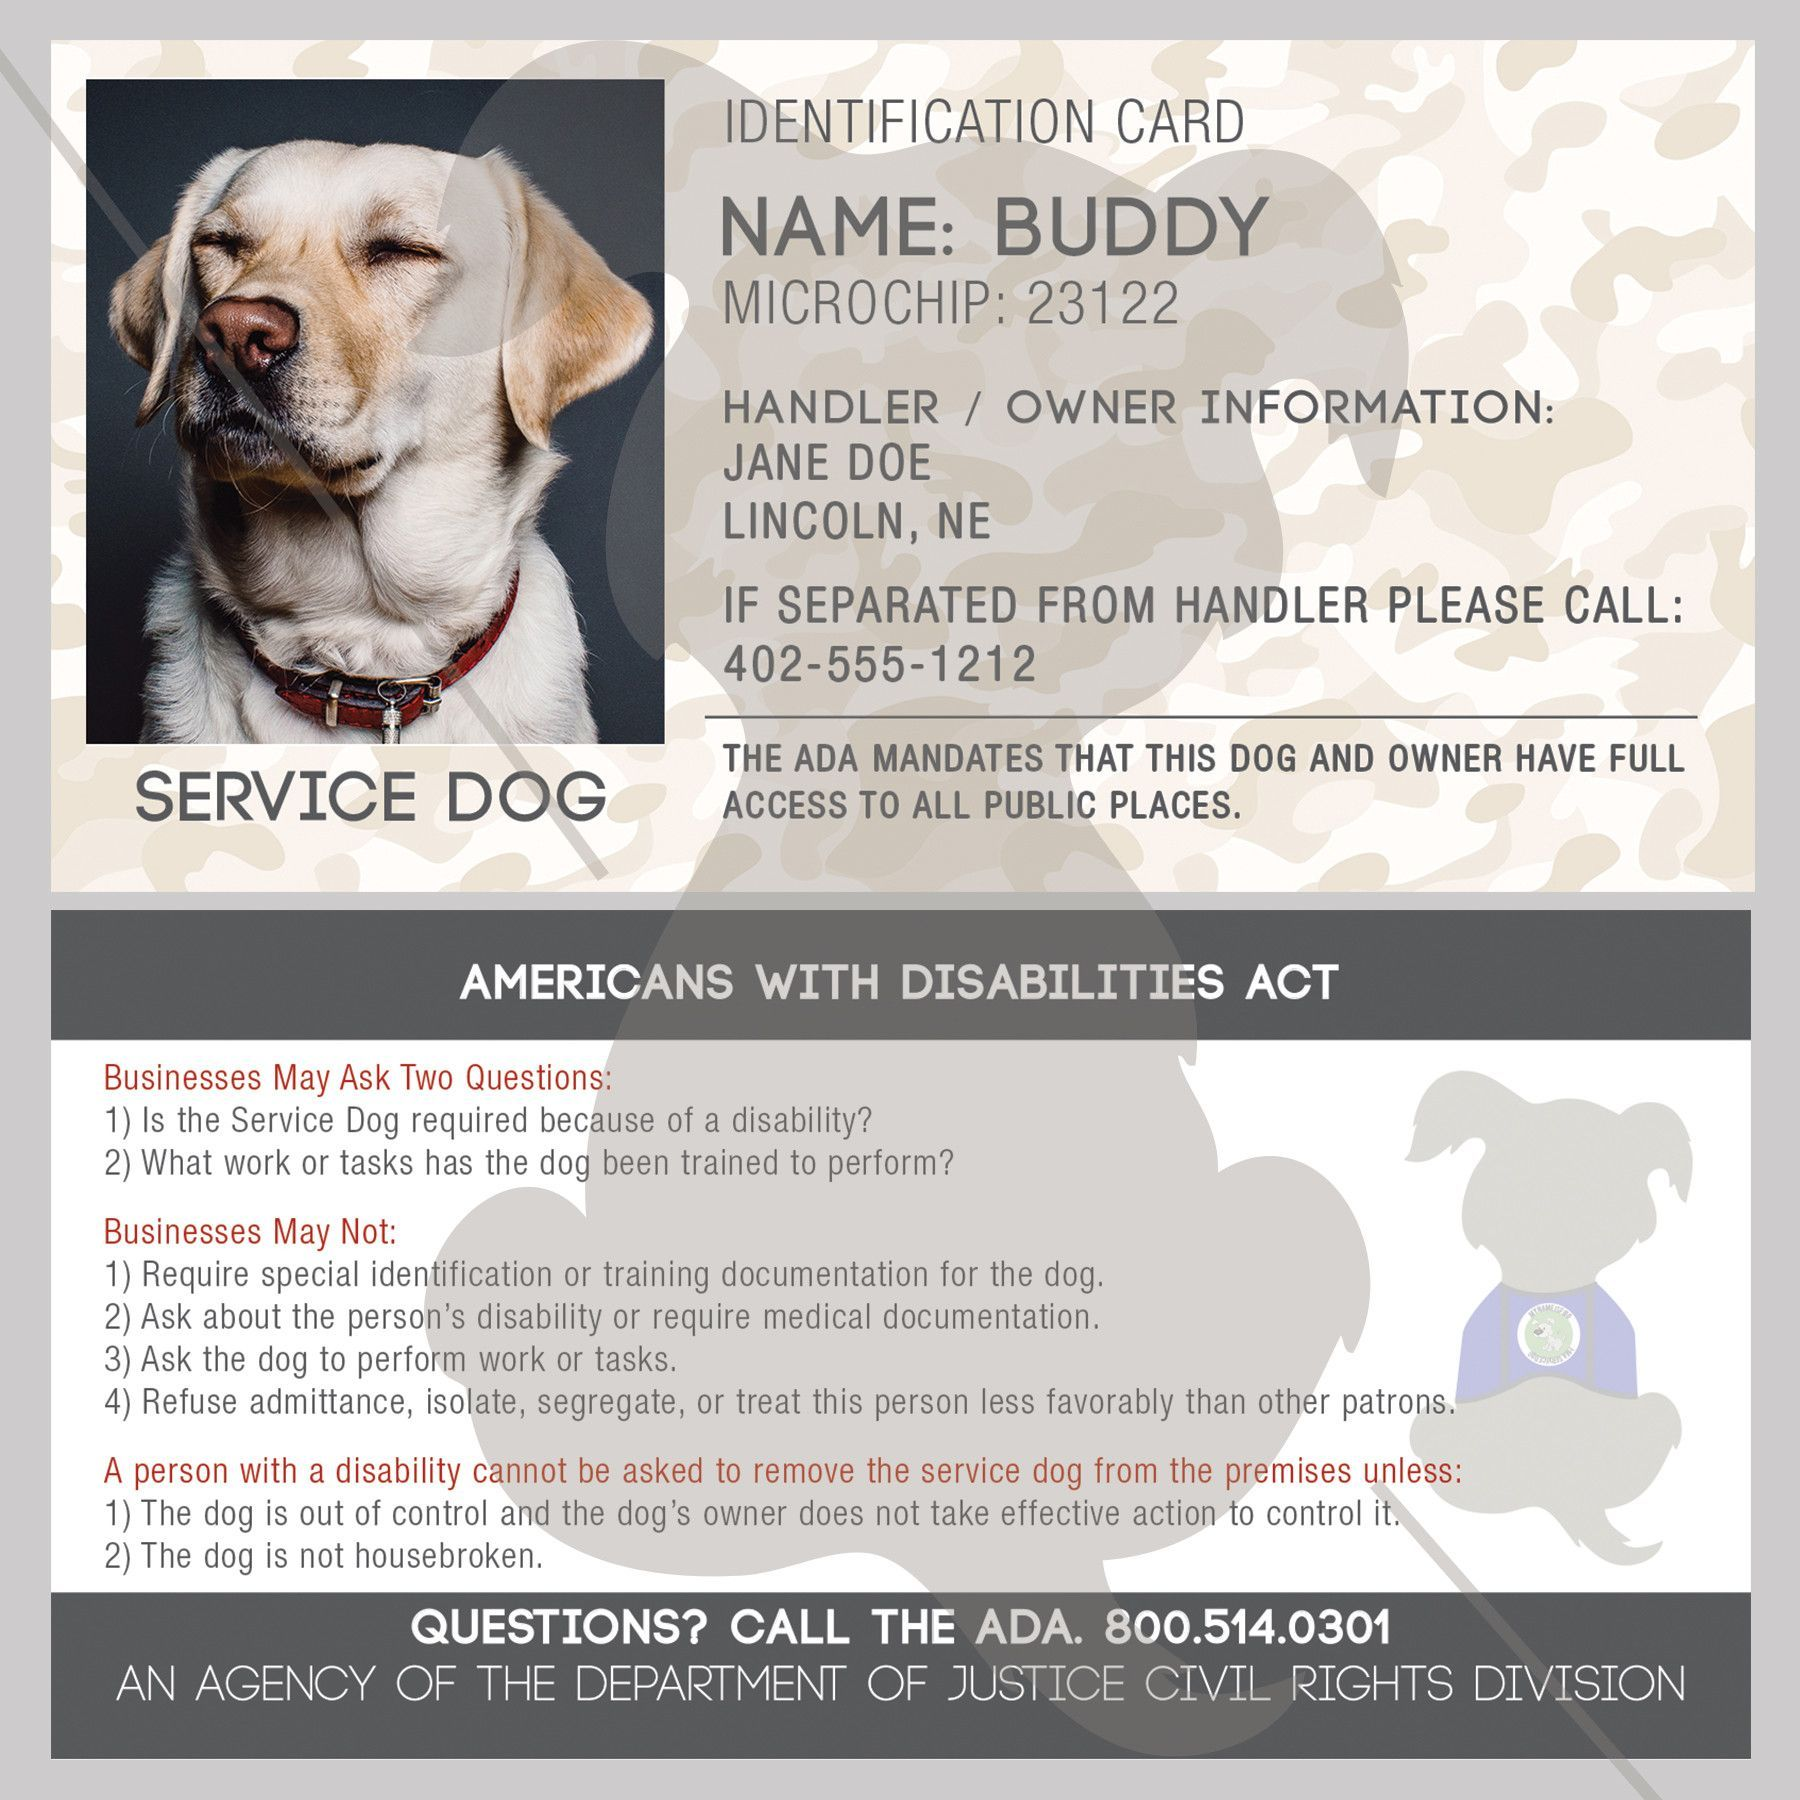 Id card service dog service dogs dog and german shepherds service dog training id card service dog xflitez Images